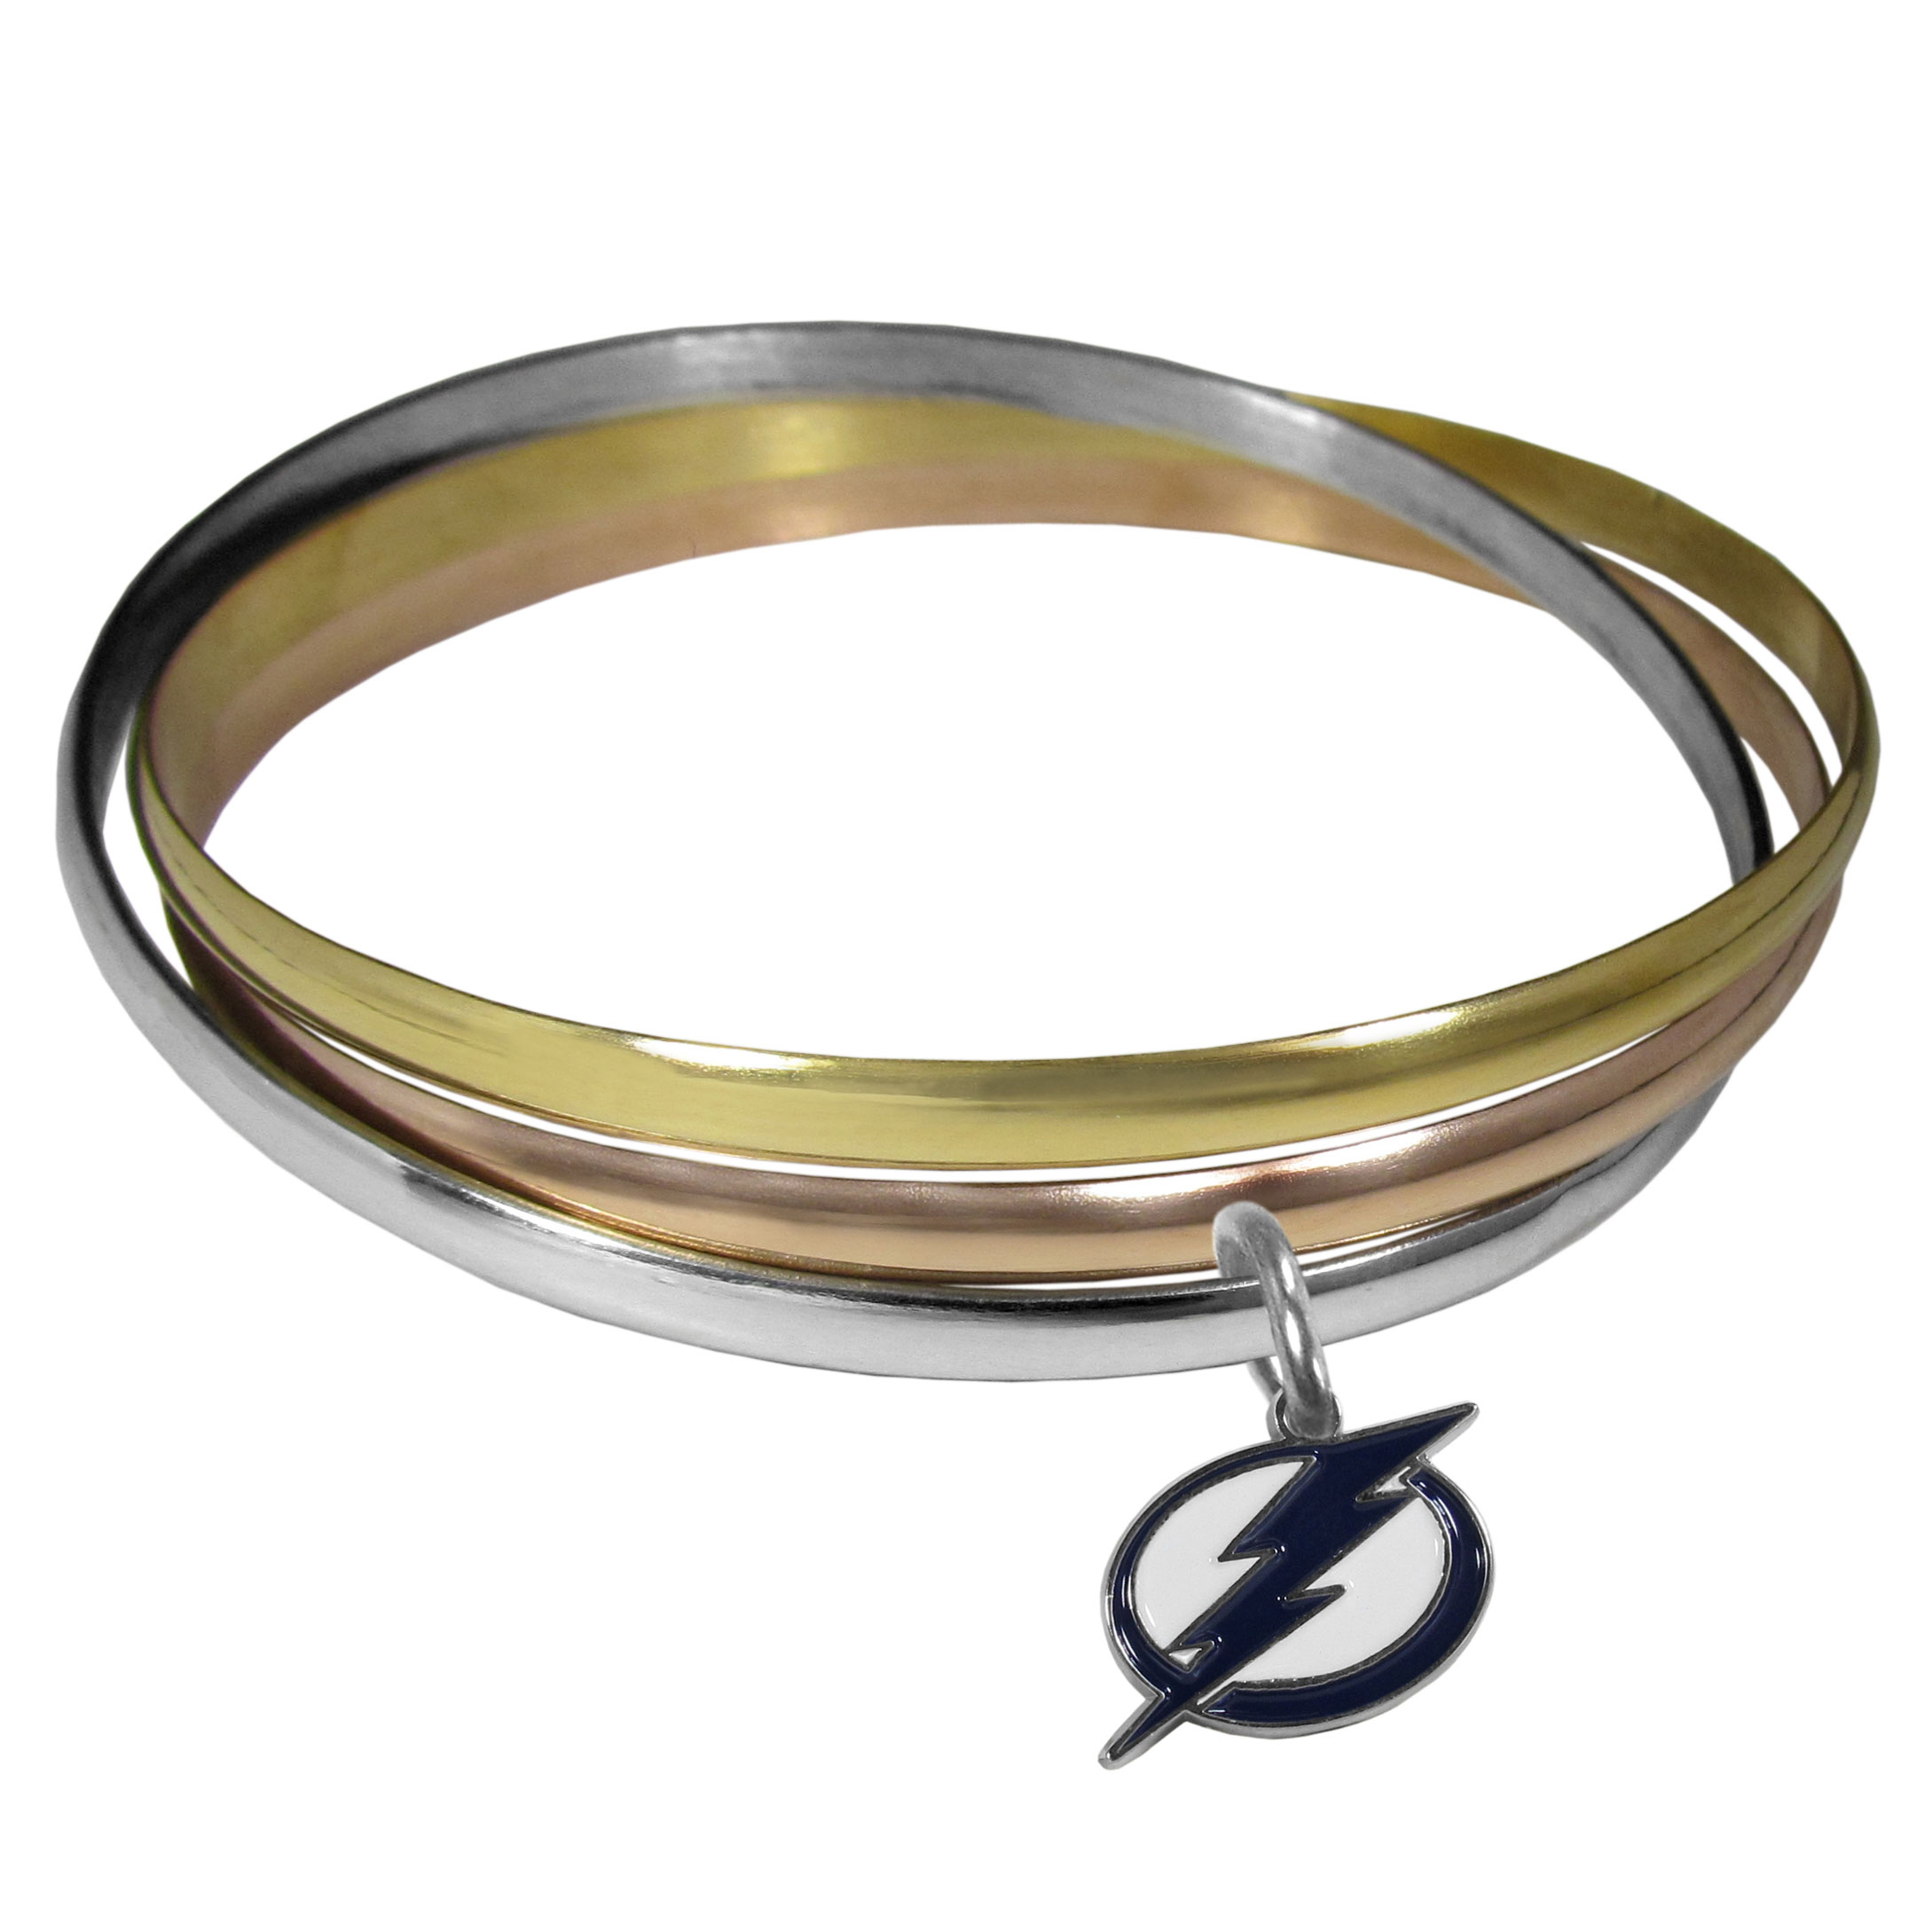 Tampa Bay Lightning® Tri-color Bangle Bracelet - These beautiful bangles come in a interlocking style and feature a fully cast Tampa Bay Lightning® charm with enameled team colors. The bracelet has a silver toned bangle, gold tone bangle and brass toned bangle.